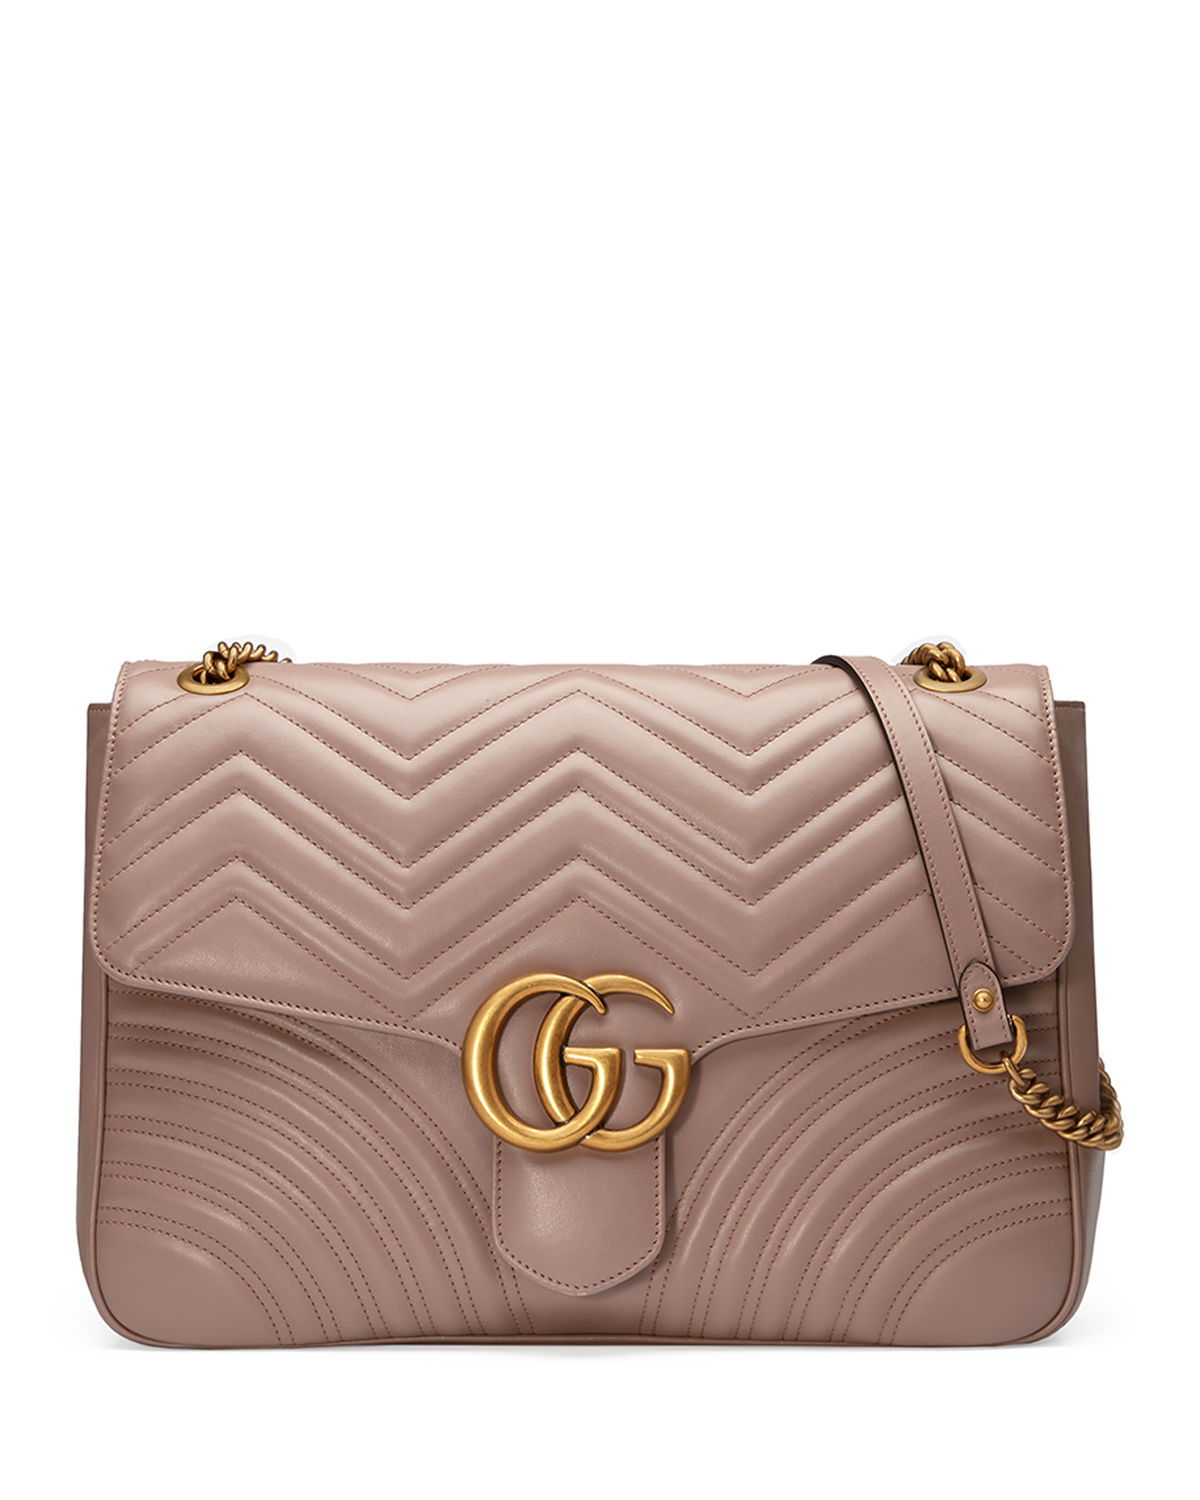 816102fbe8c7 Gucci GG Marmont Large Chevron Quilted Leather Shoulder Bag | Neiman ...